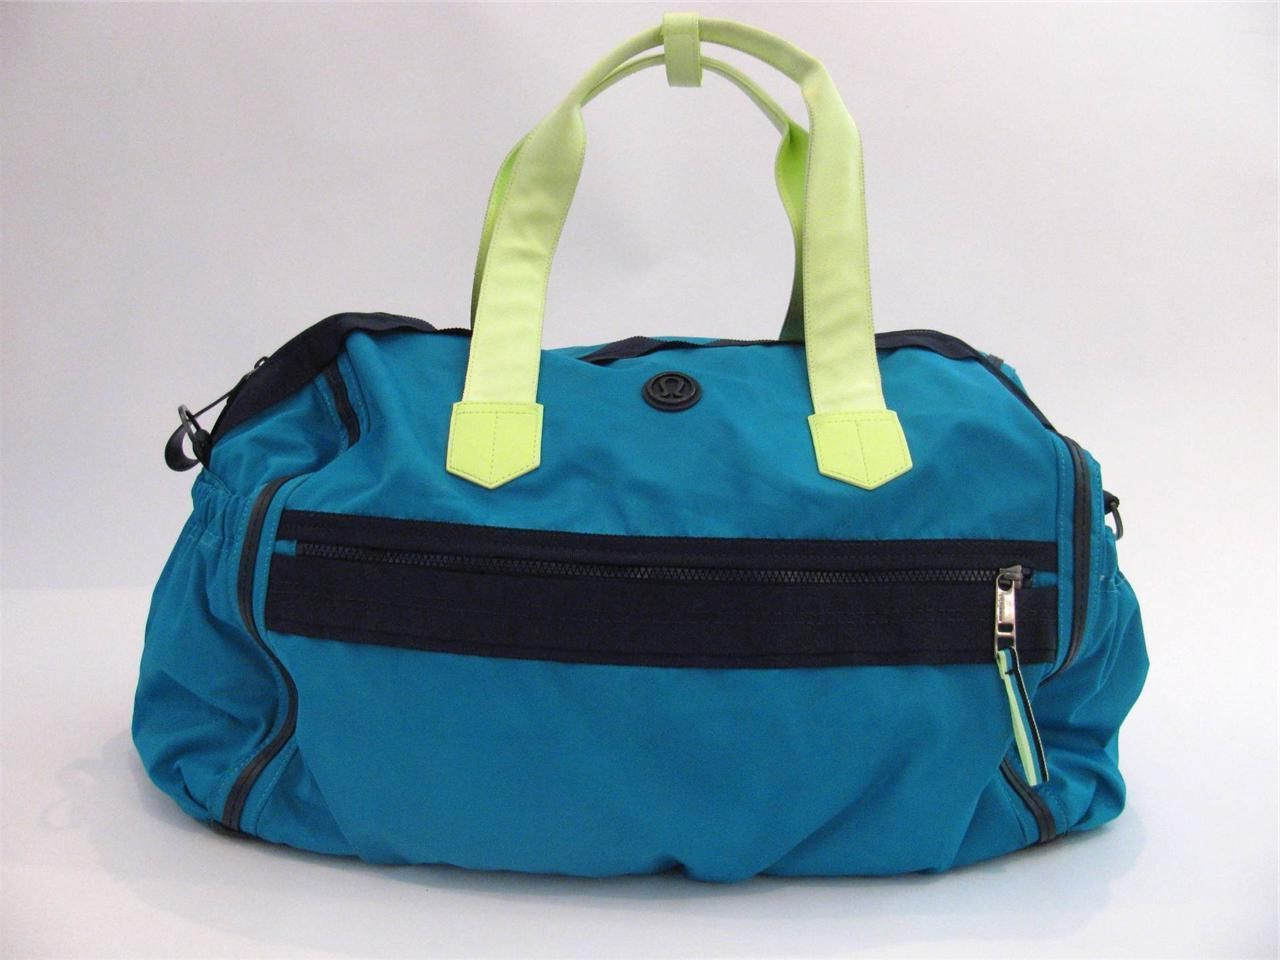 lululemon duffle bag reebok duffle bag fred perry duffle bag